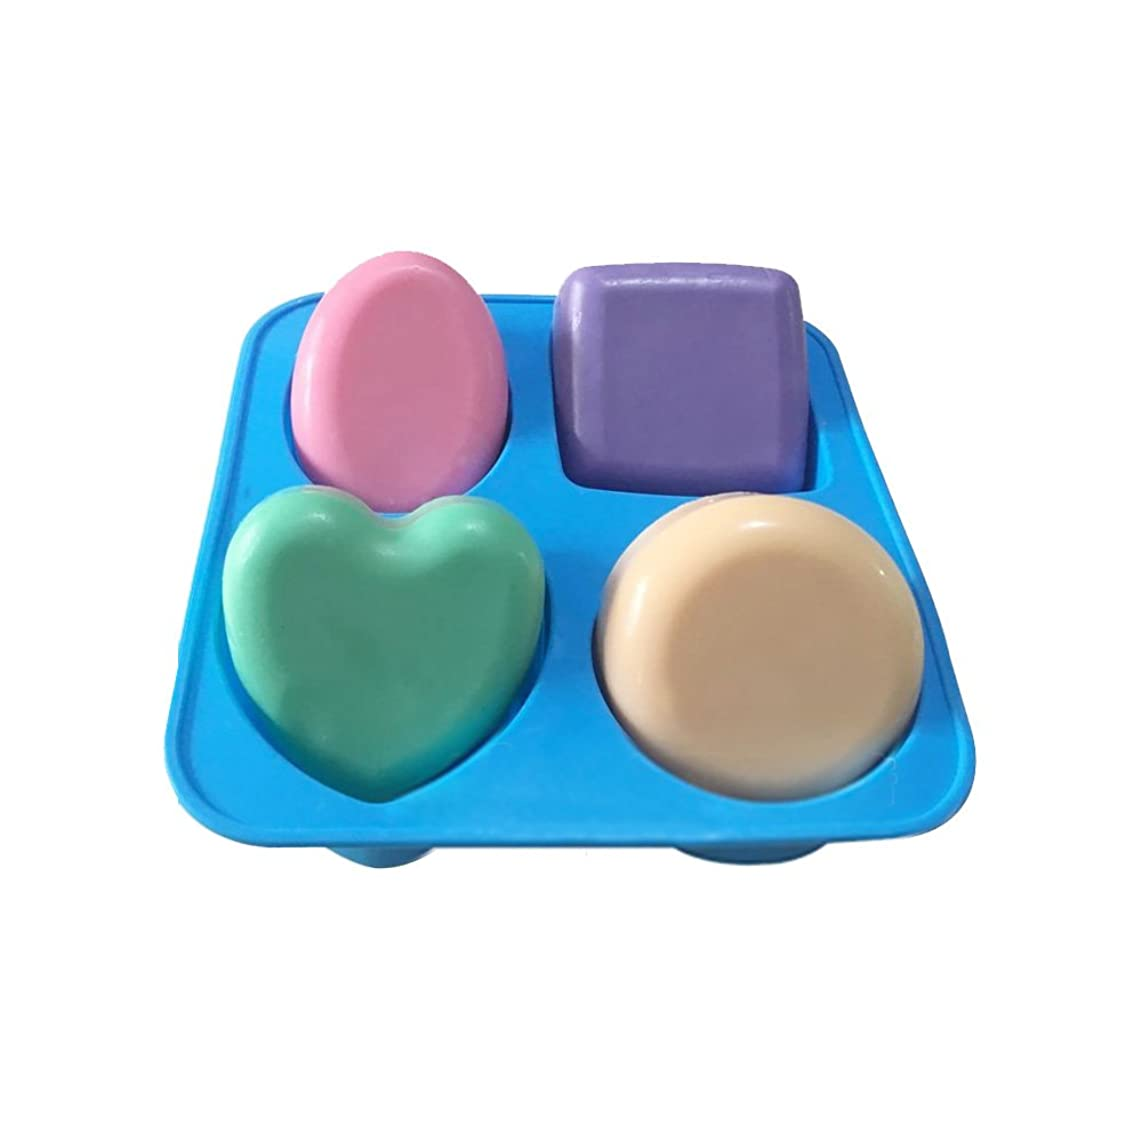 X-Haibei Basic Plain Square Heart Oval Round Soap Bar Silicone Mold Candle Making for Homemade